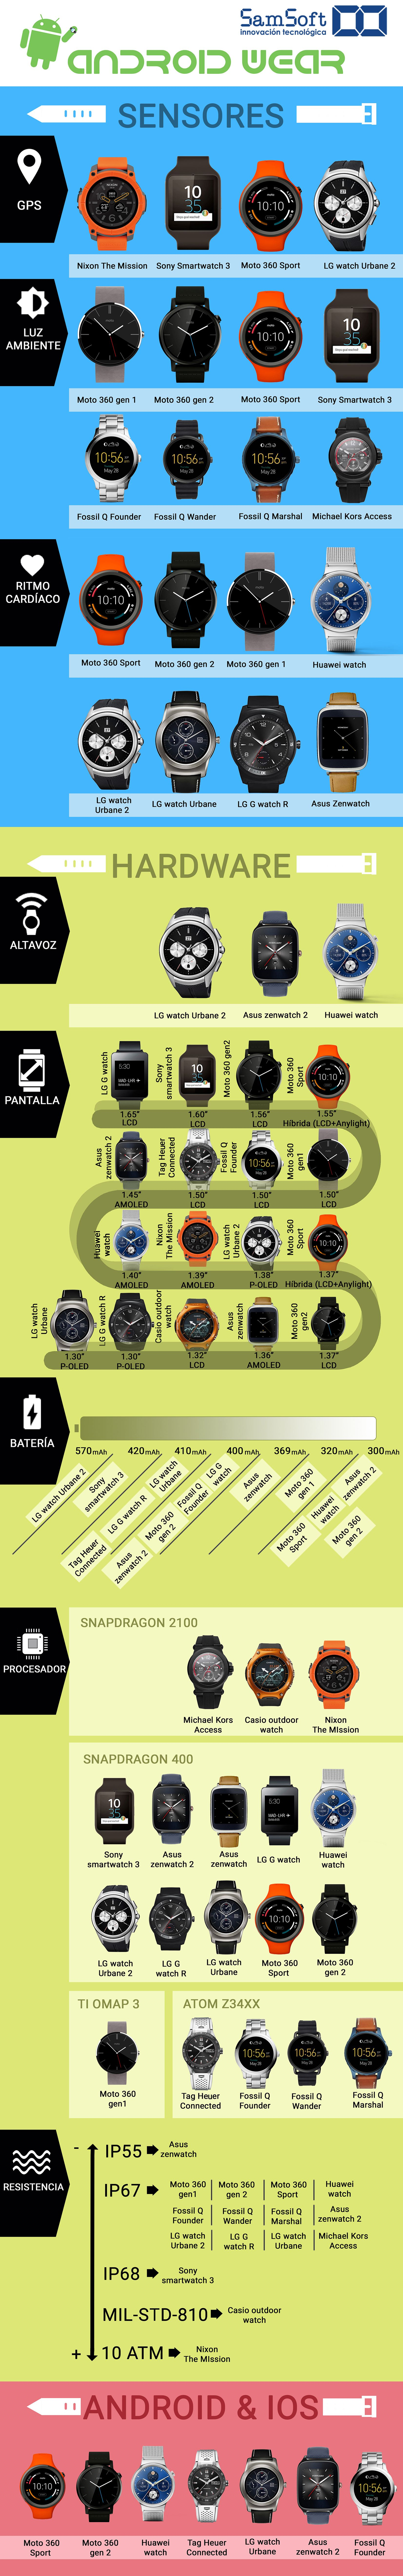 comparativa-android-wear-